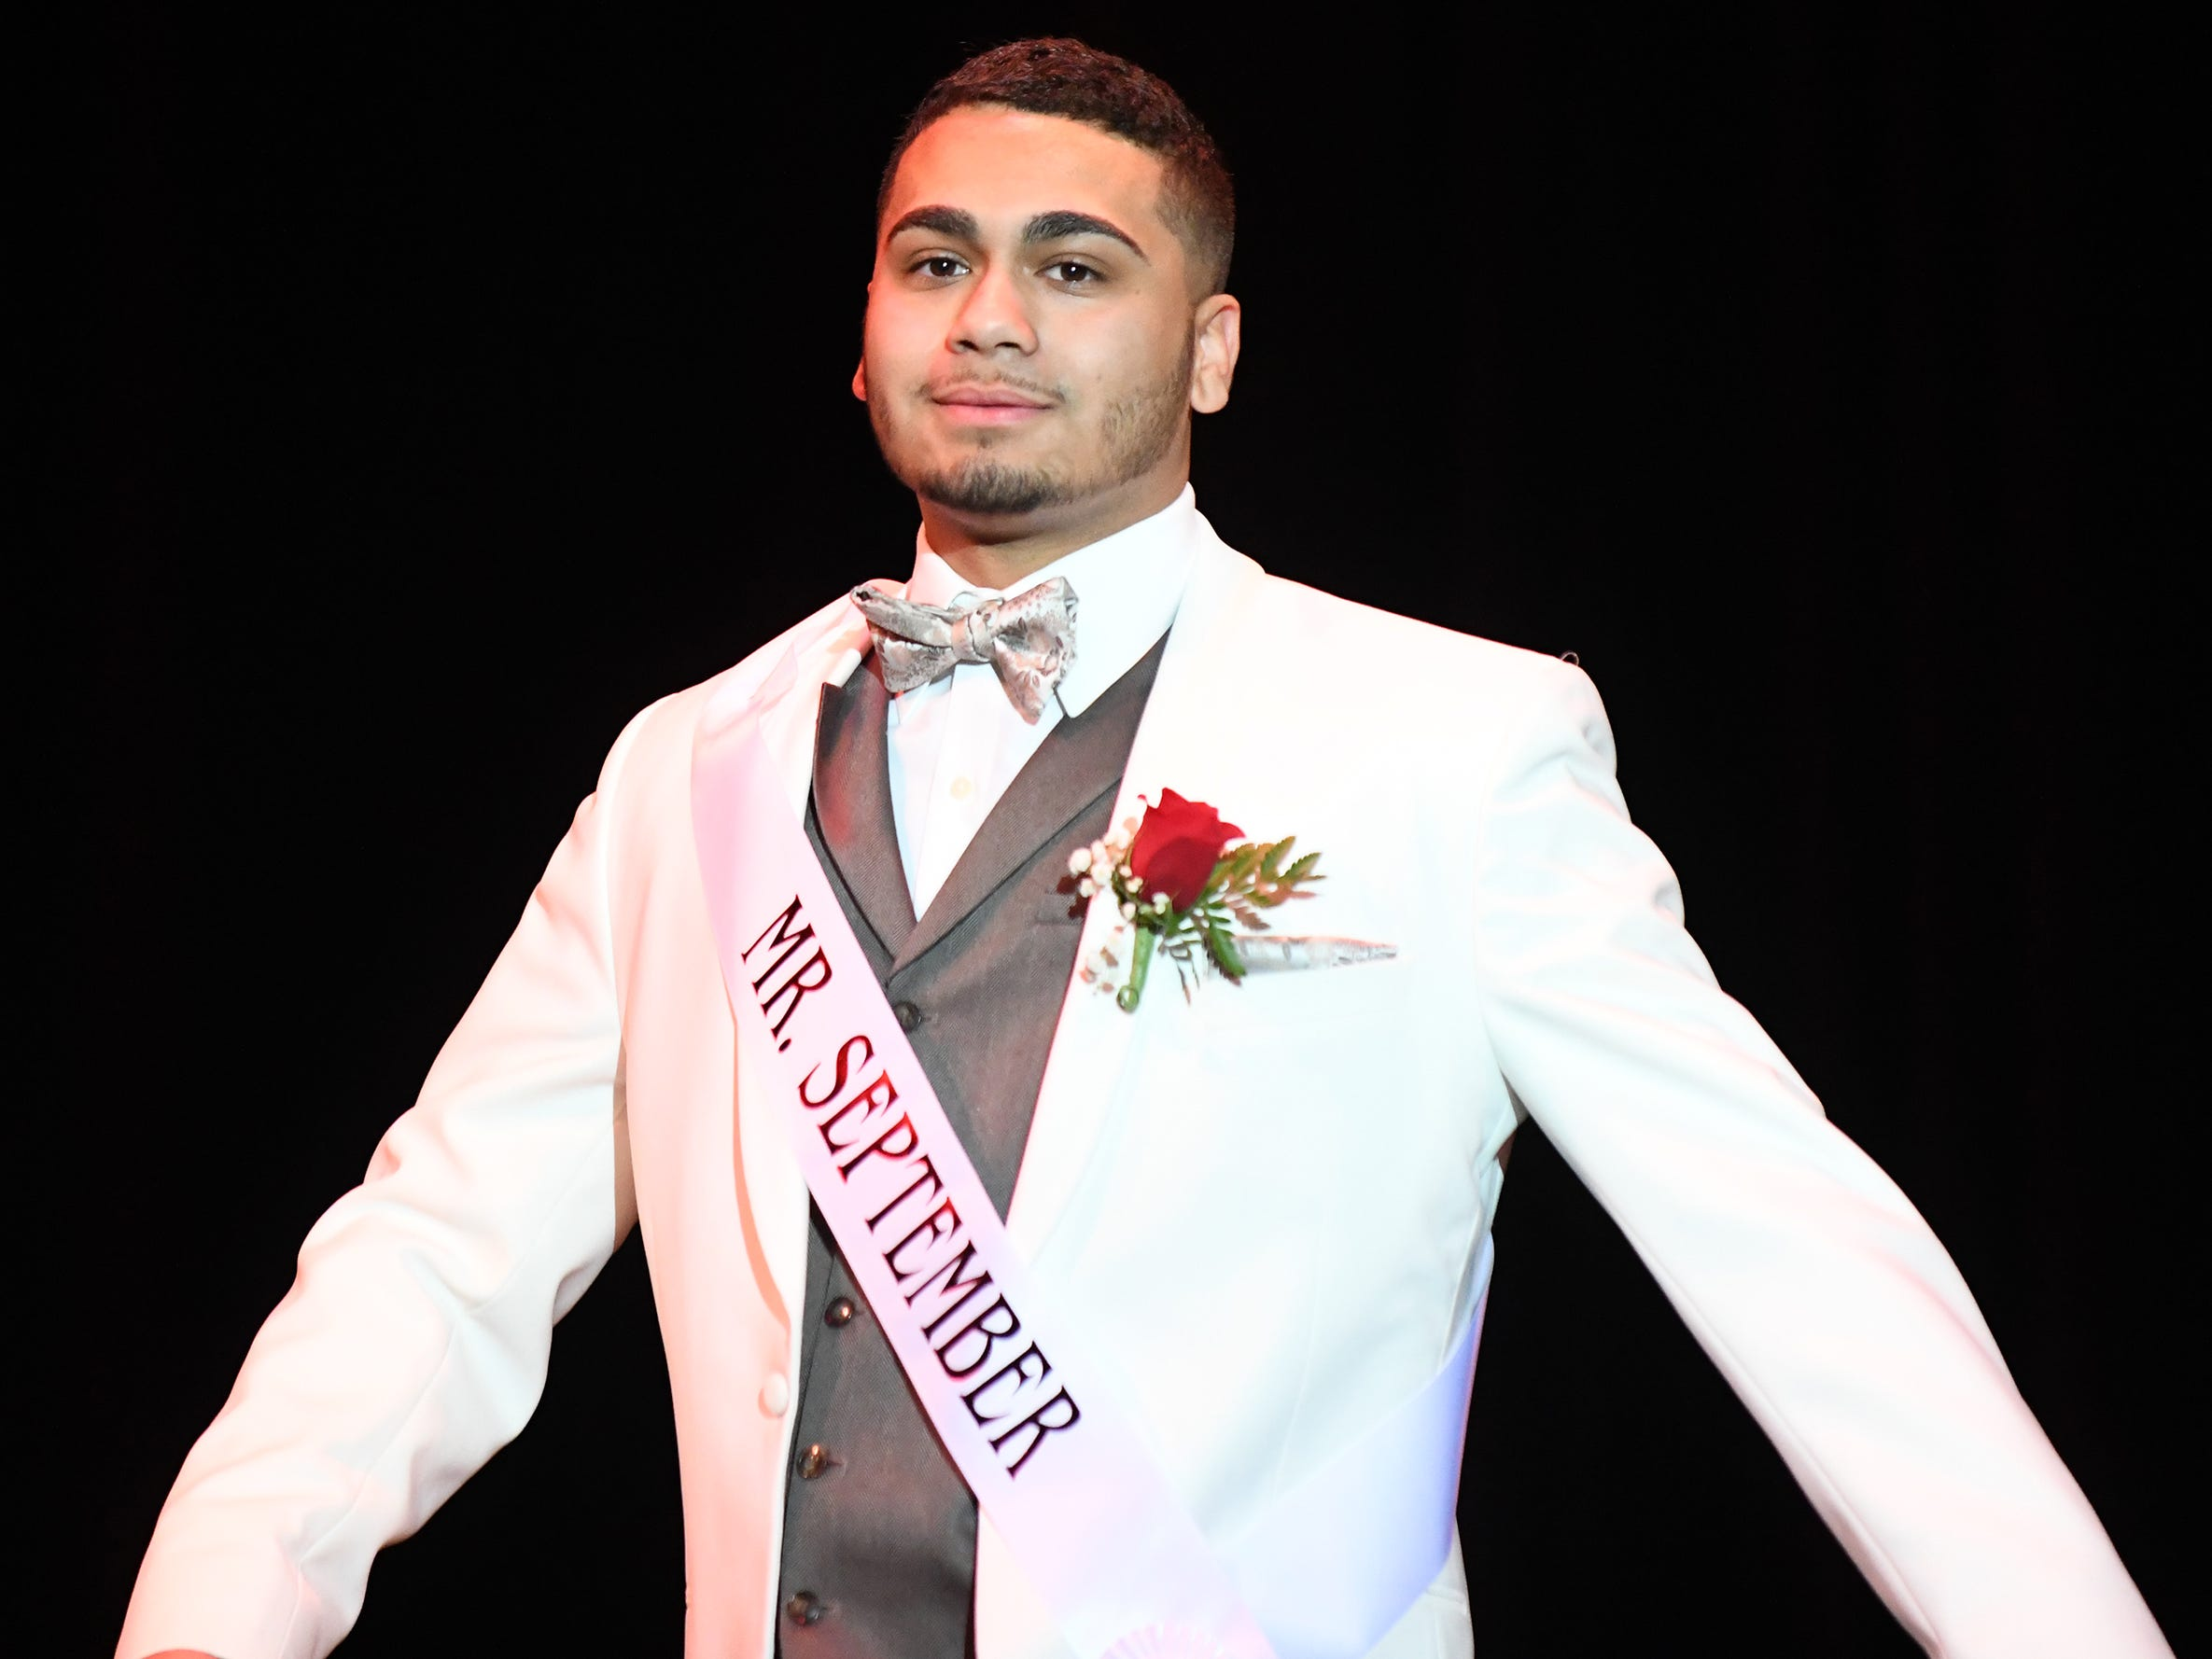 Colby Martinez shows off his formal wear during Mr. Vineland 2019 at Vineland High School on Thursday, January 10.